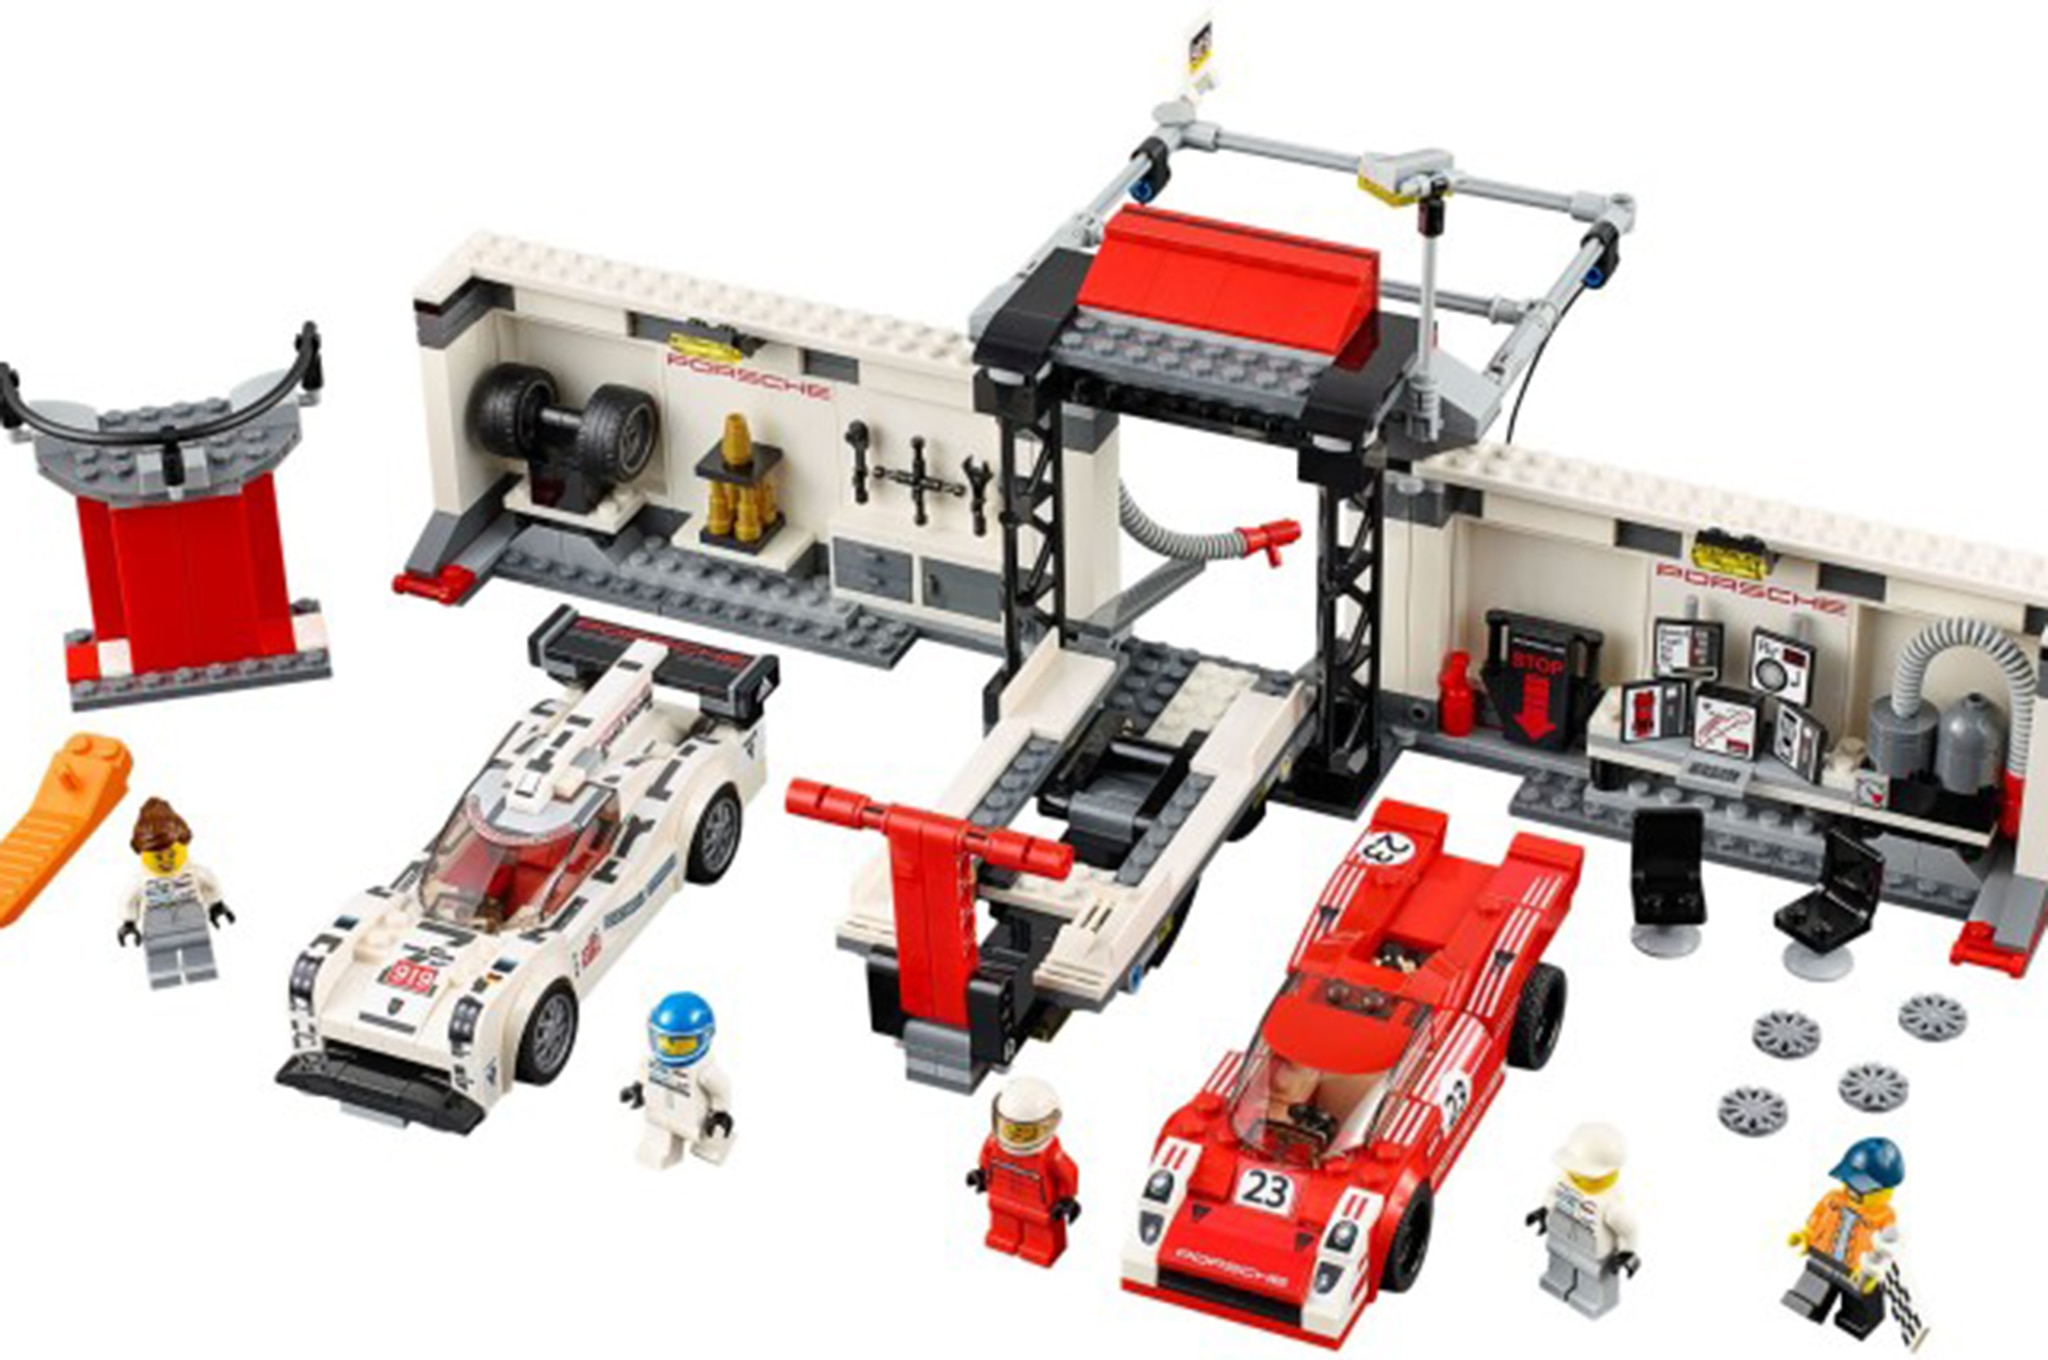 New Lego Speed Champions Sets Bring Out Our Inner Kid